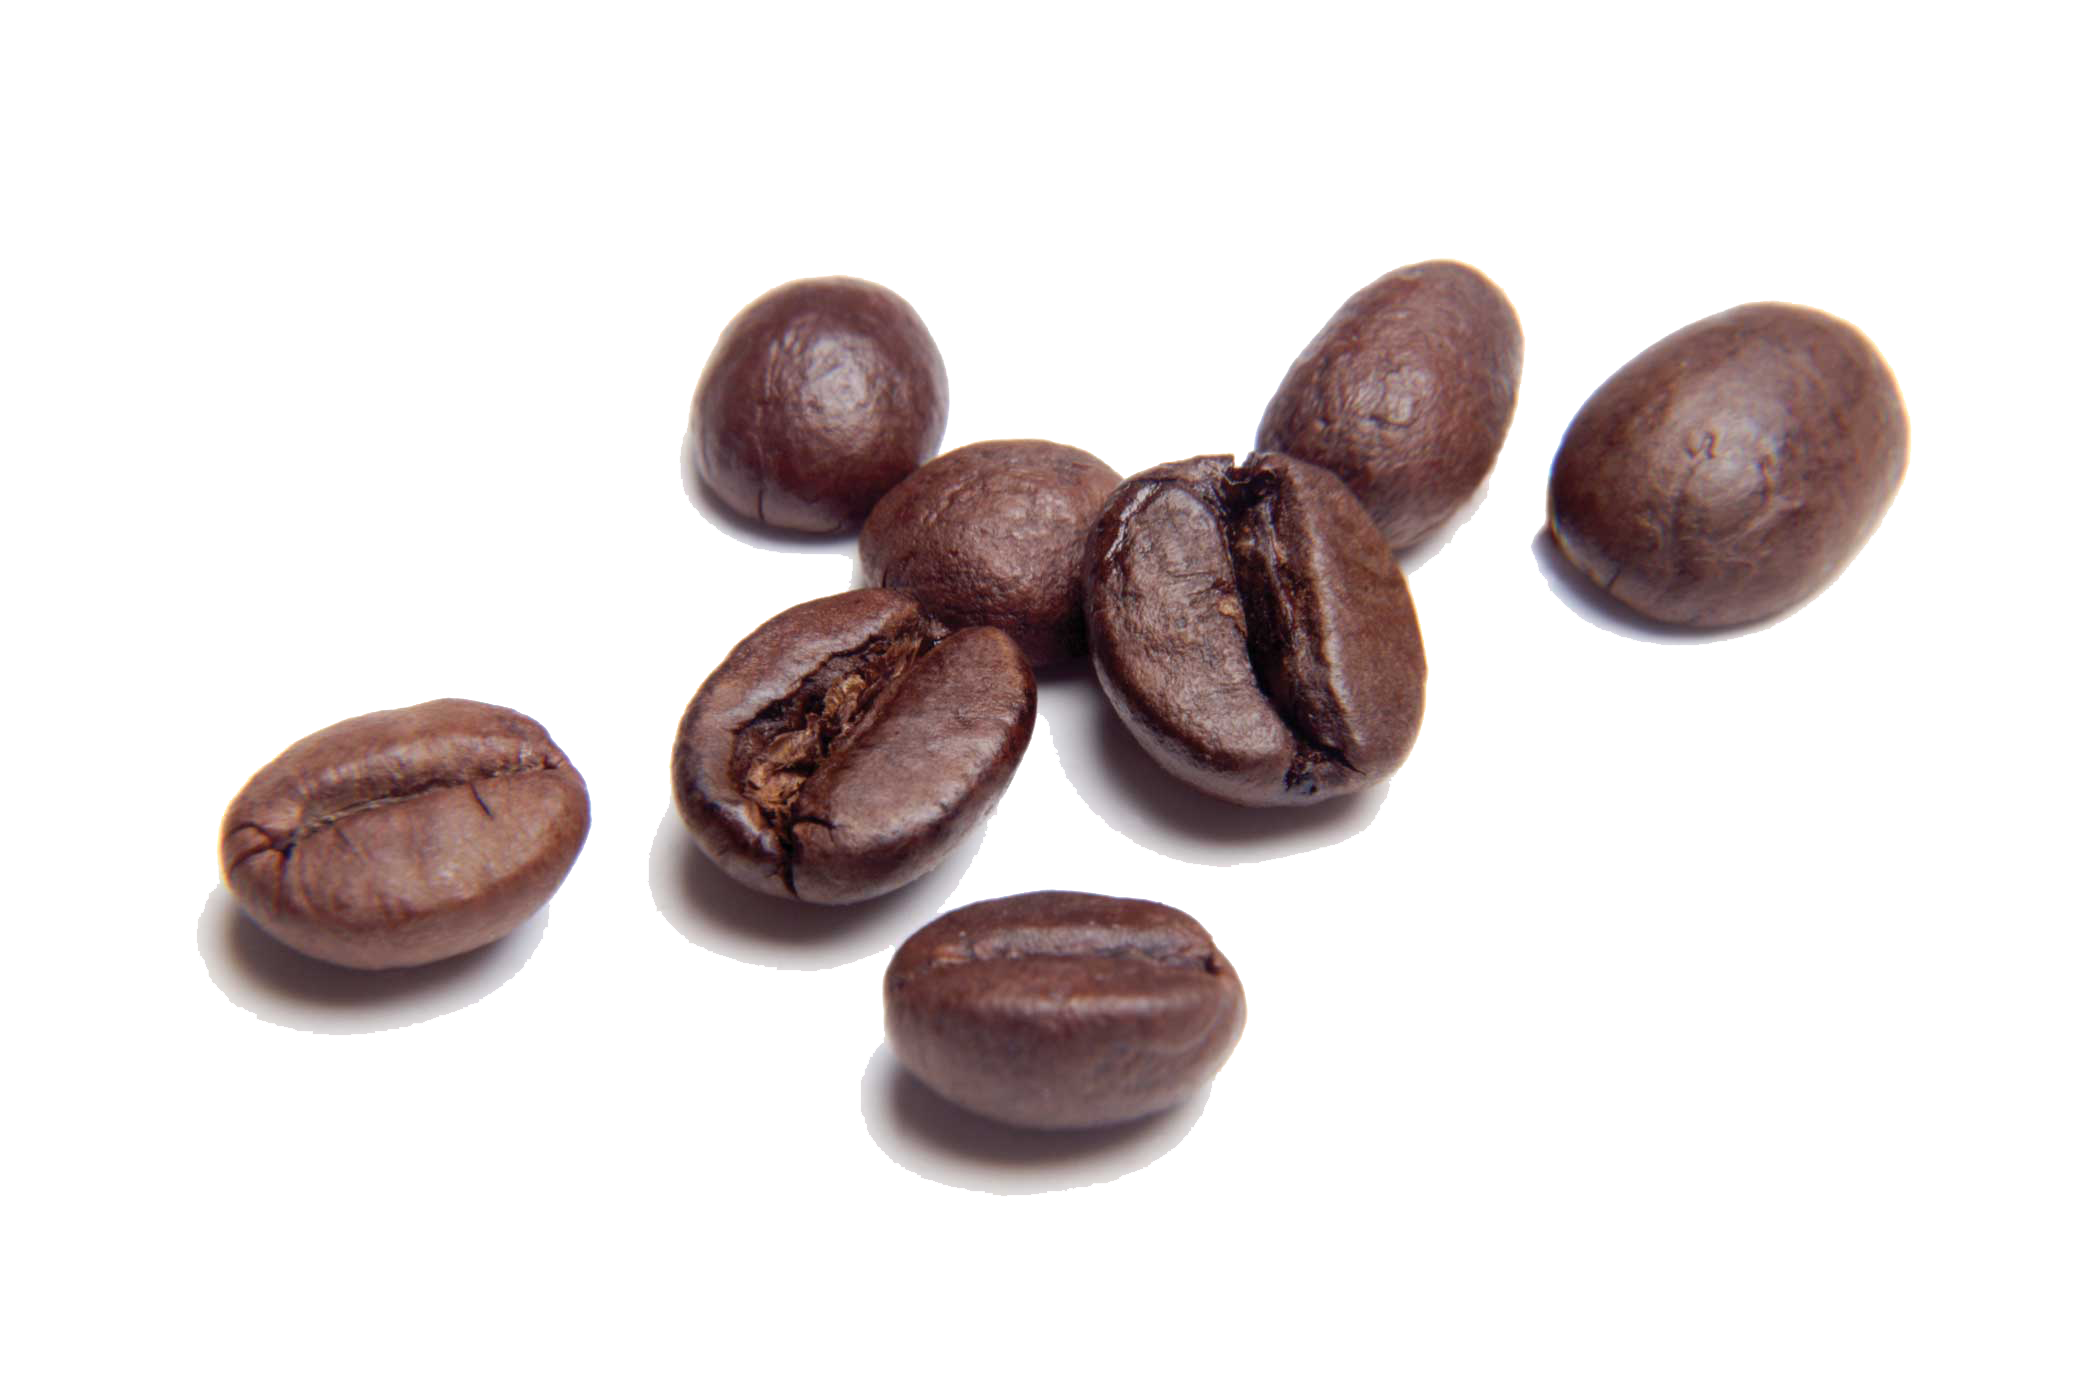 Coffee grain png. Beans transparent images all